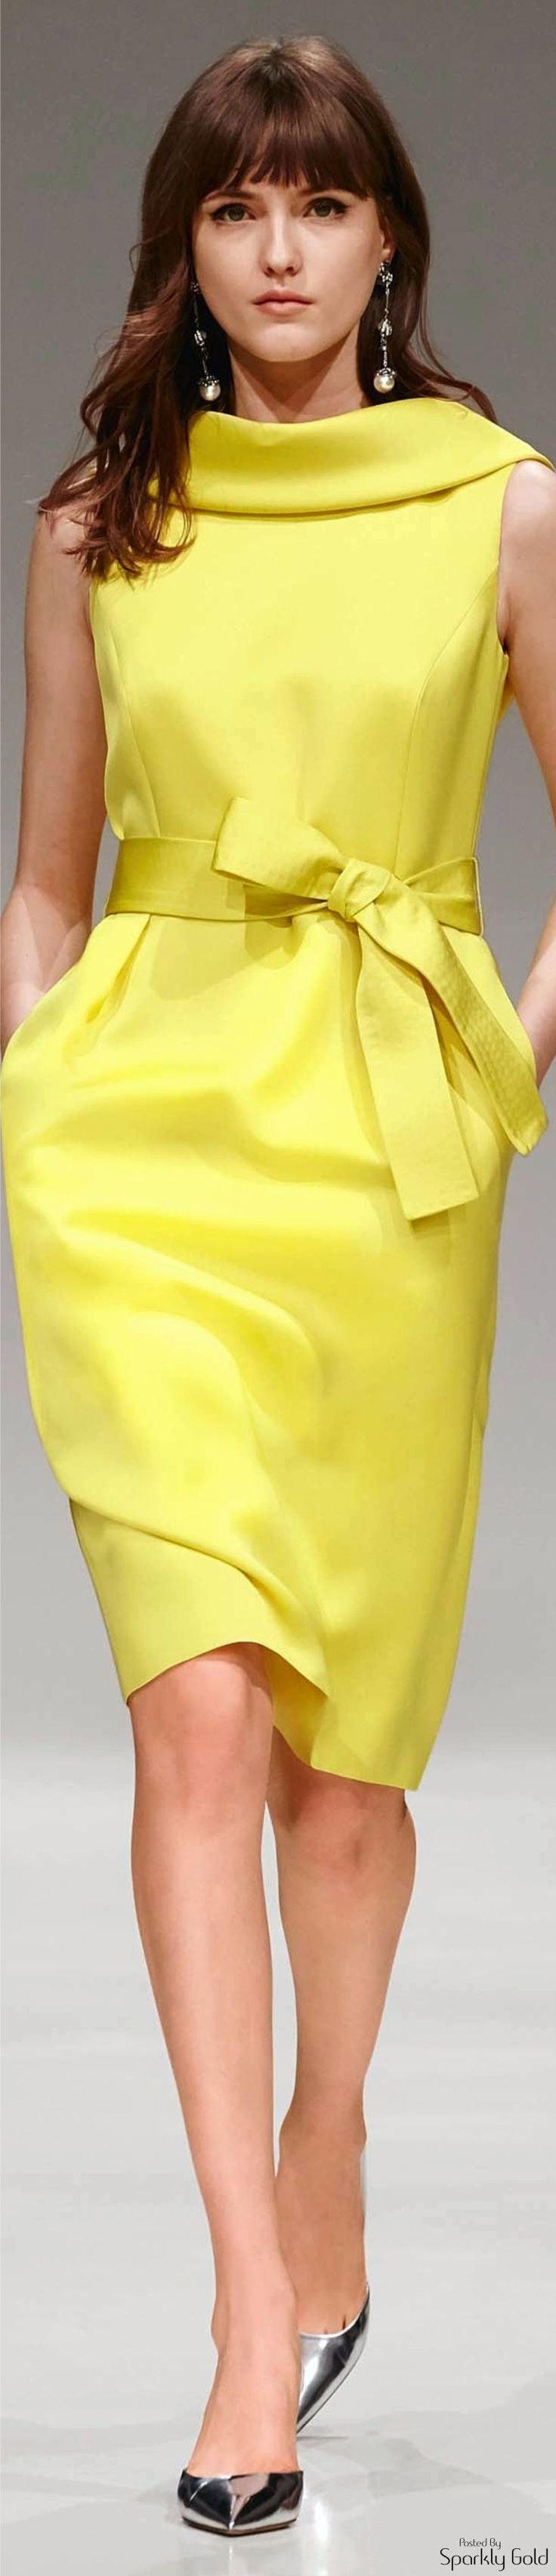 Escada ~ Resort yellow dress 2017 Seo VYO http://www.seovyo.com/tr/site-ici-on-page-seo-nedir-site-ici-seo-teknikleri-nelerdir/